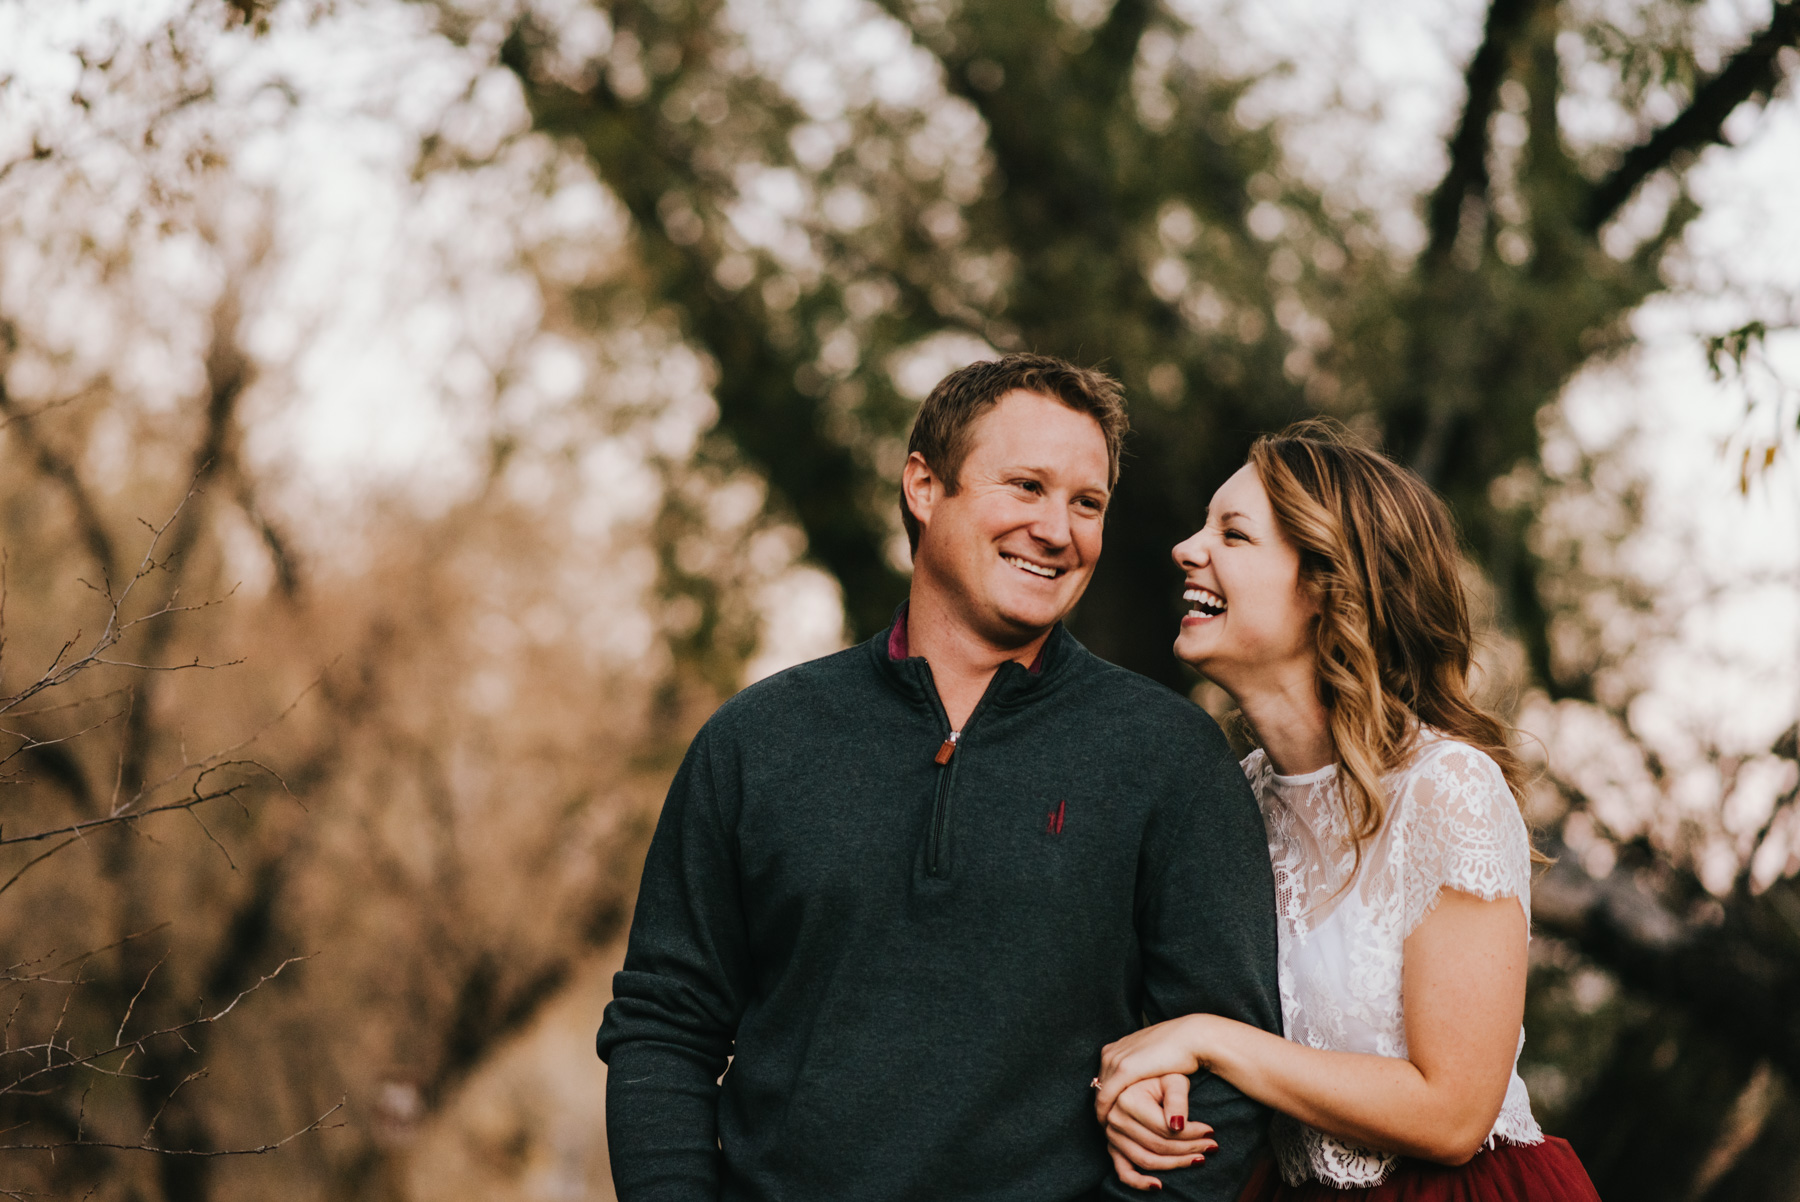 I love how they are laughing here during their late fall engagement session in Denver, Colorado.